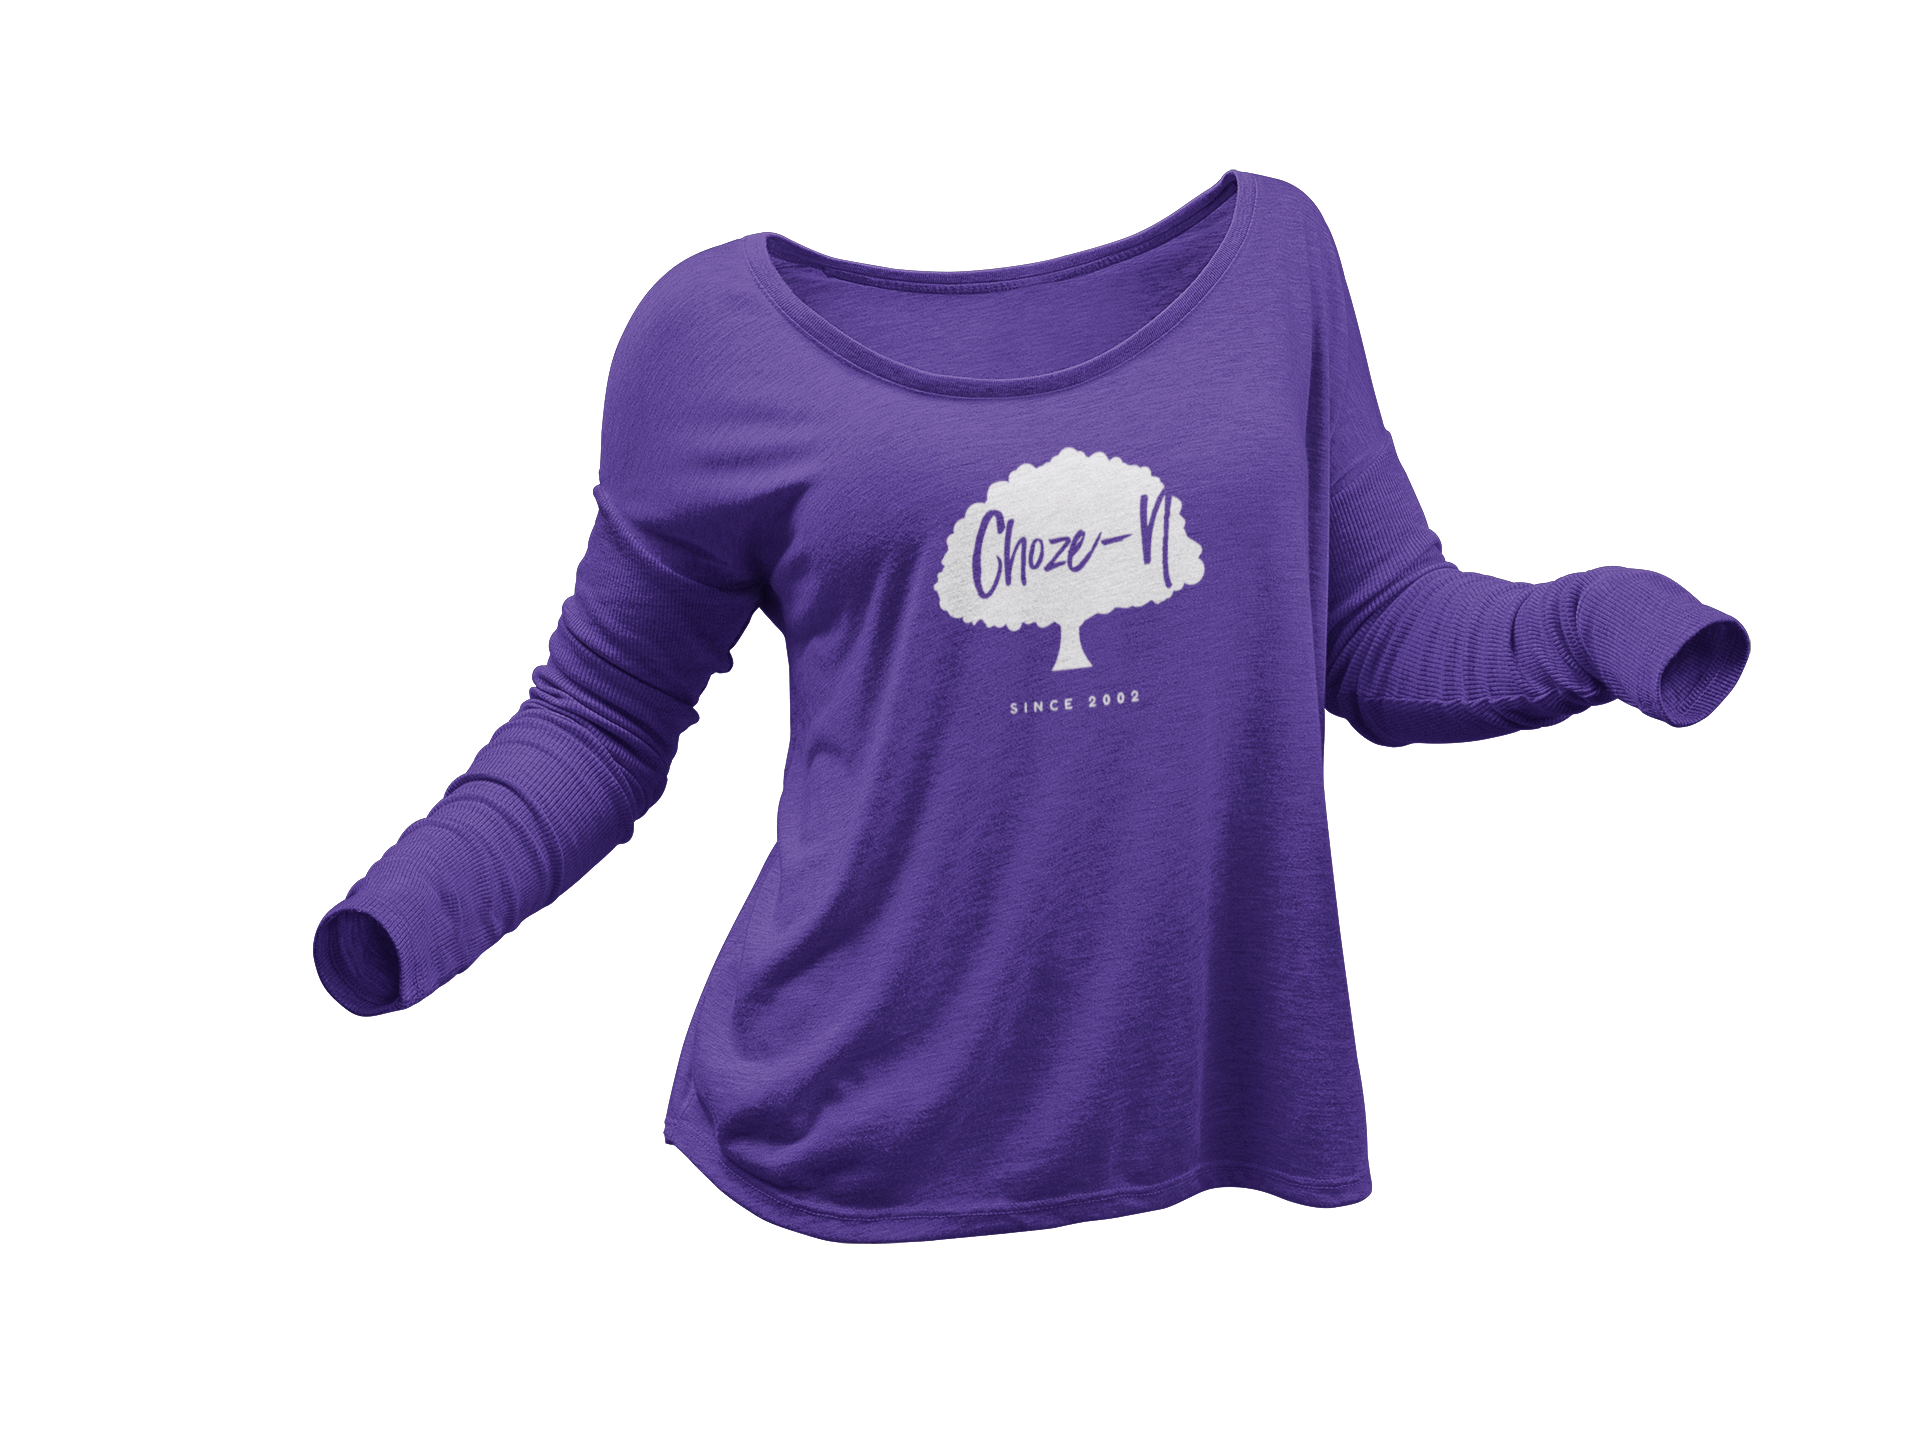 Choze-N Ladies Long Sleeve White Tree Purple Shirt•